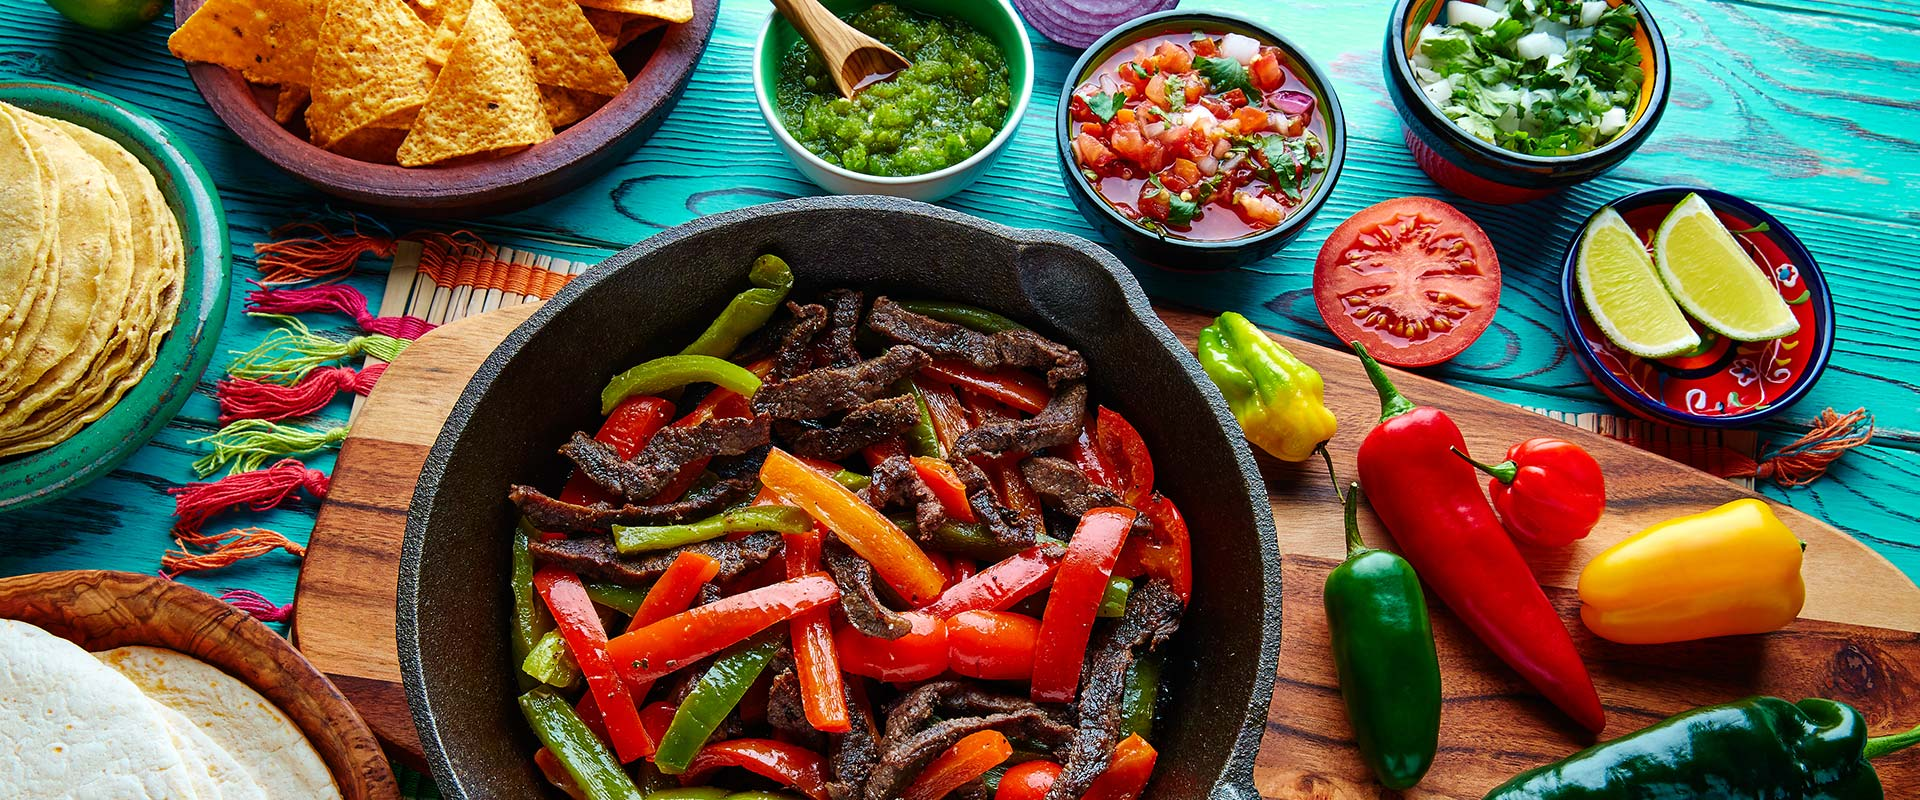 Image result for mexican cuisine